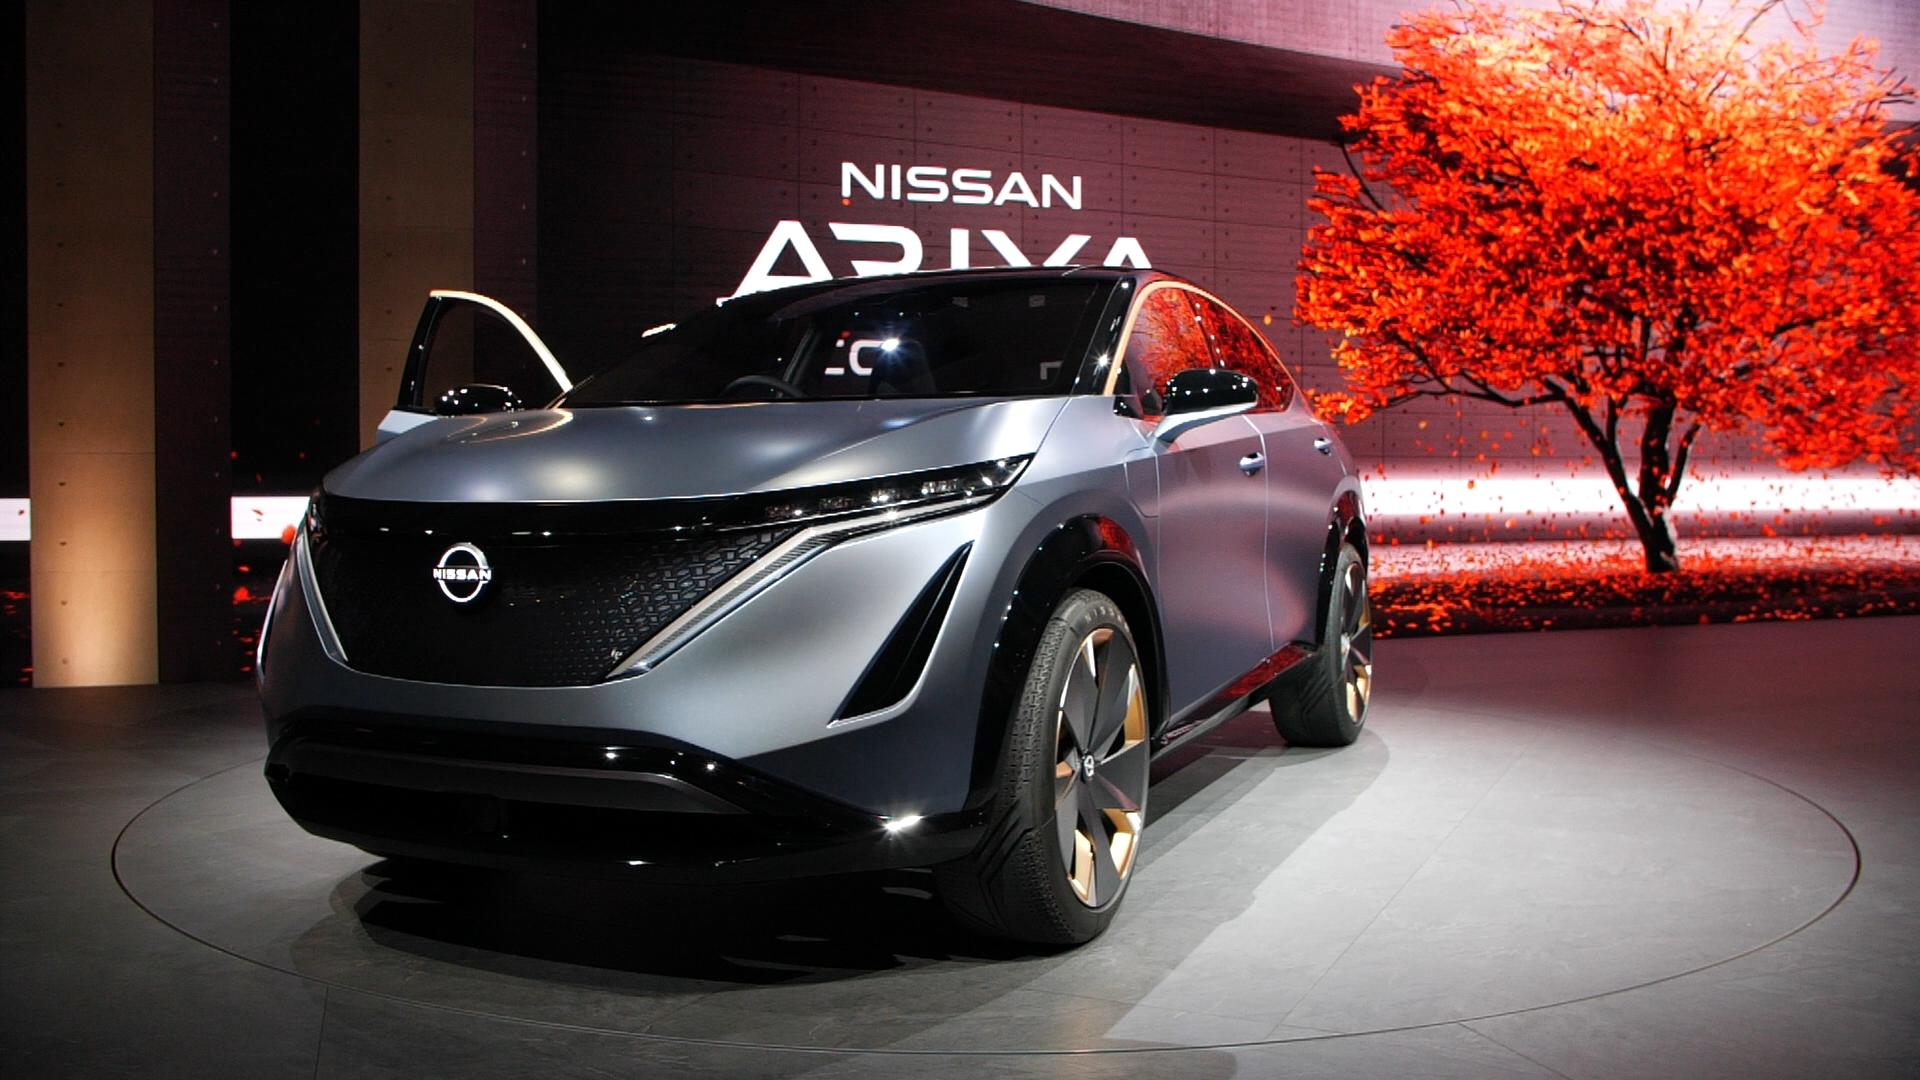 Video: Nissan Ariya concept is the shape of things to come